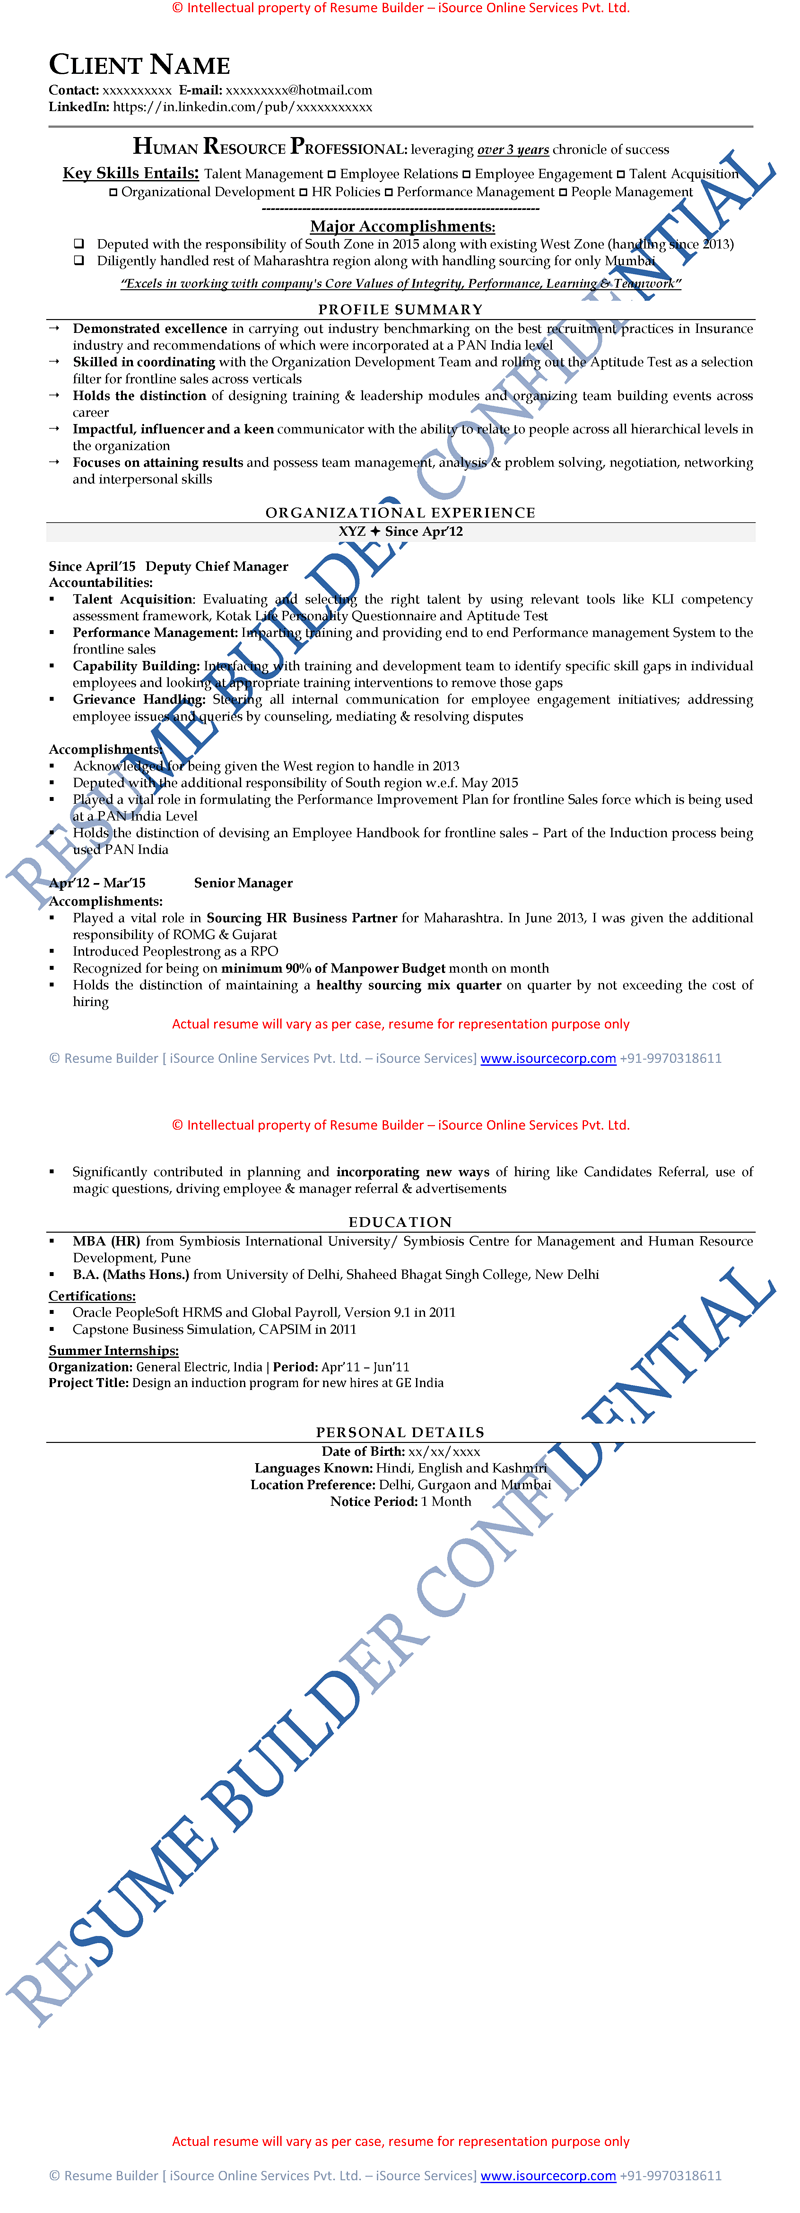 free resume samples  free cv template download  free cv sample  senior executive resume sample